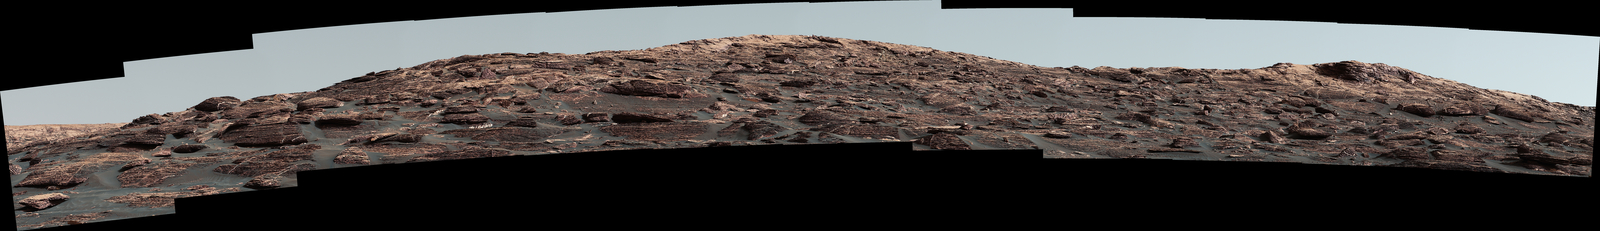 "The Mastcam on NASA's Curiosity Mars rover captured this view of ""Vera Rubin Ridge"" about two weeks before the rover starting to ascend this steep ridge on lower Mount Sharp."